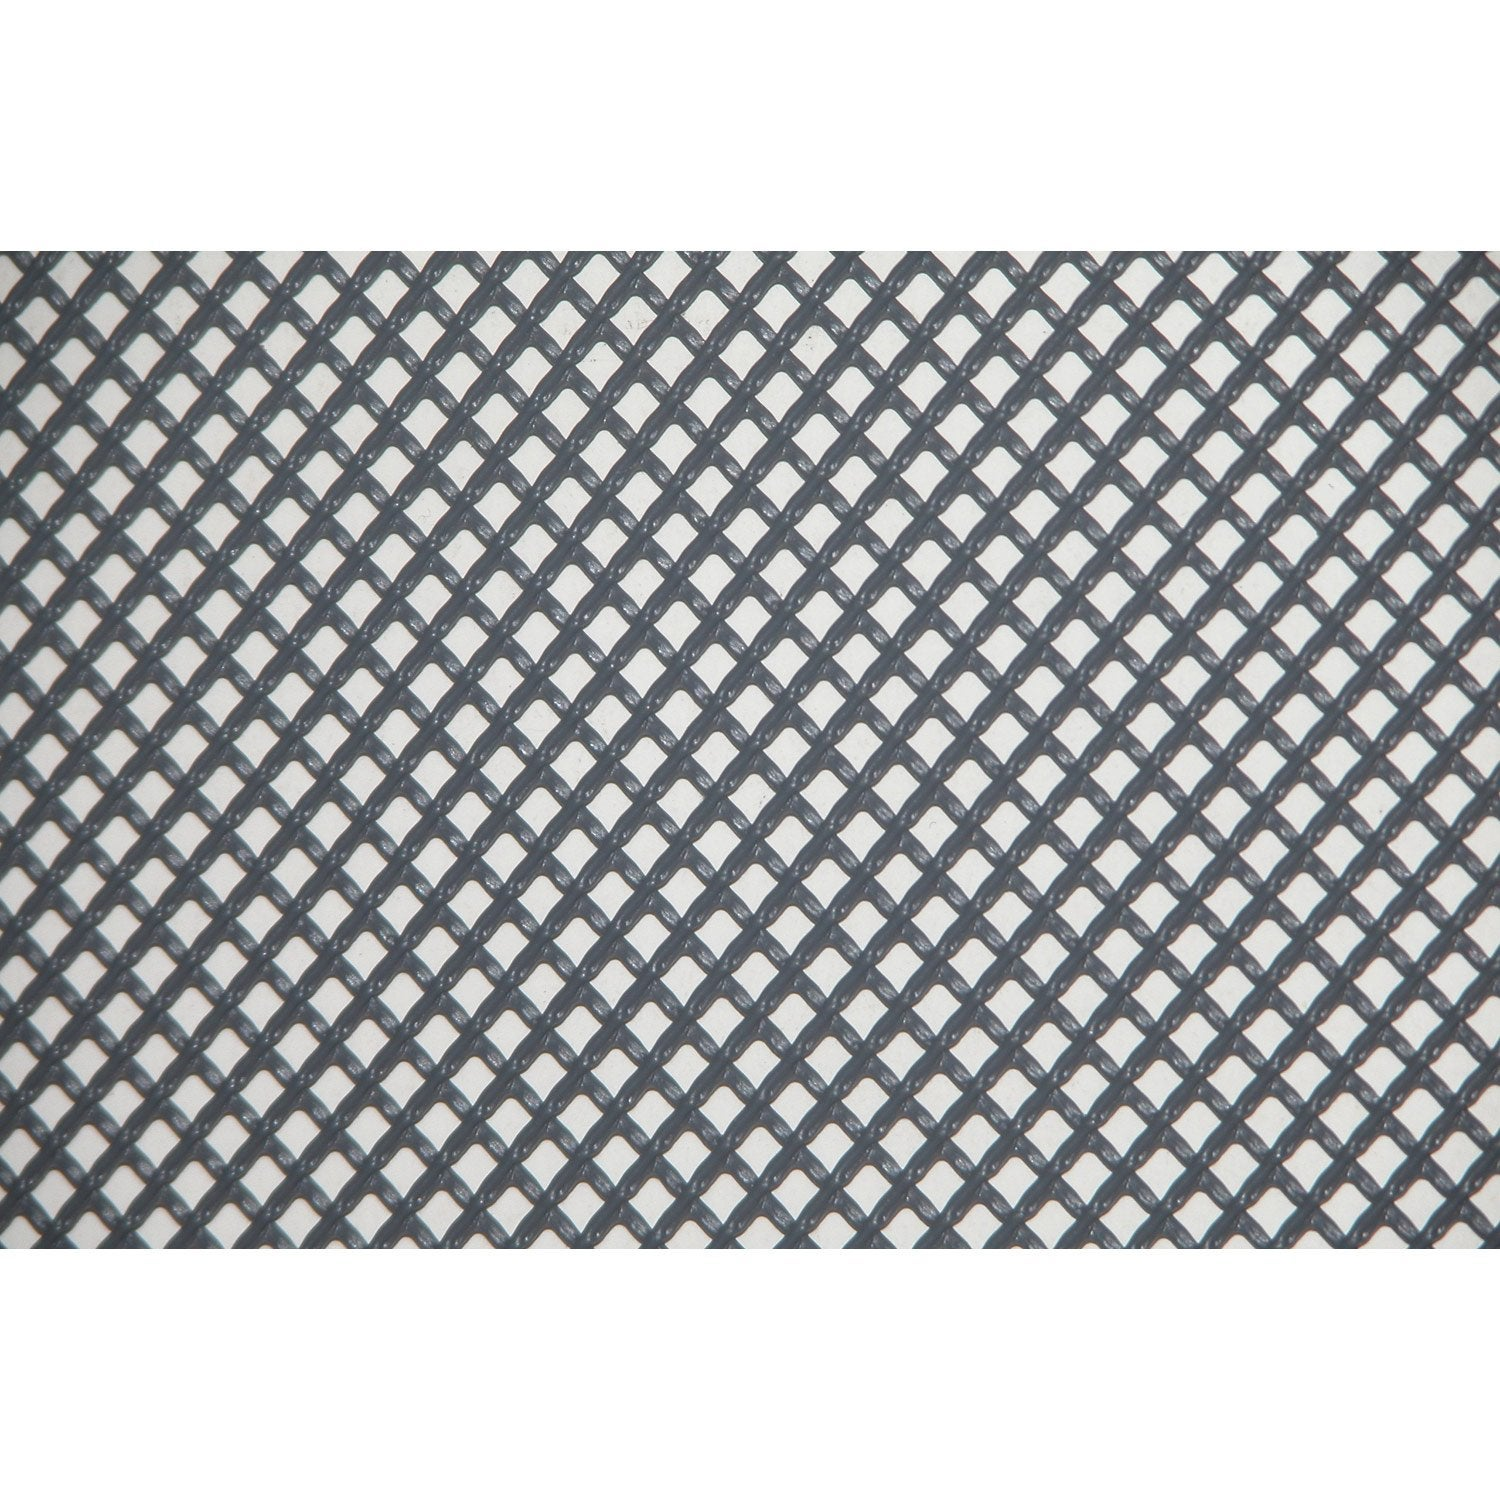 Grillage extrusion gris h 0 5 x l 5 m maille de h 3 x l 3 for Grillage jardin leroy merlin